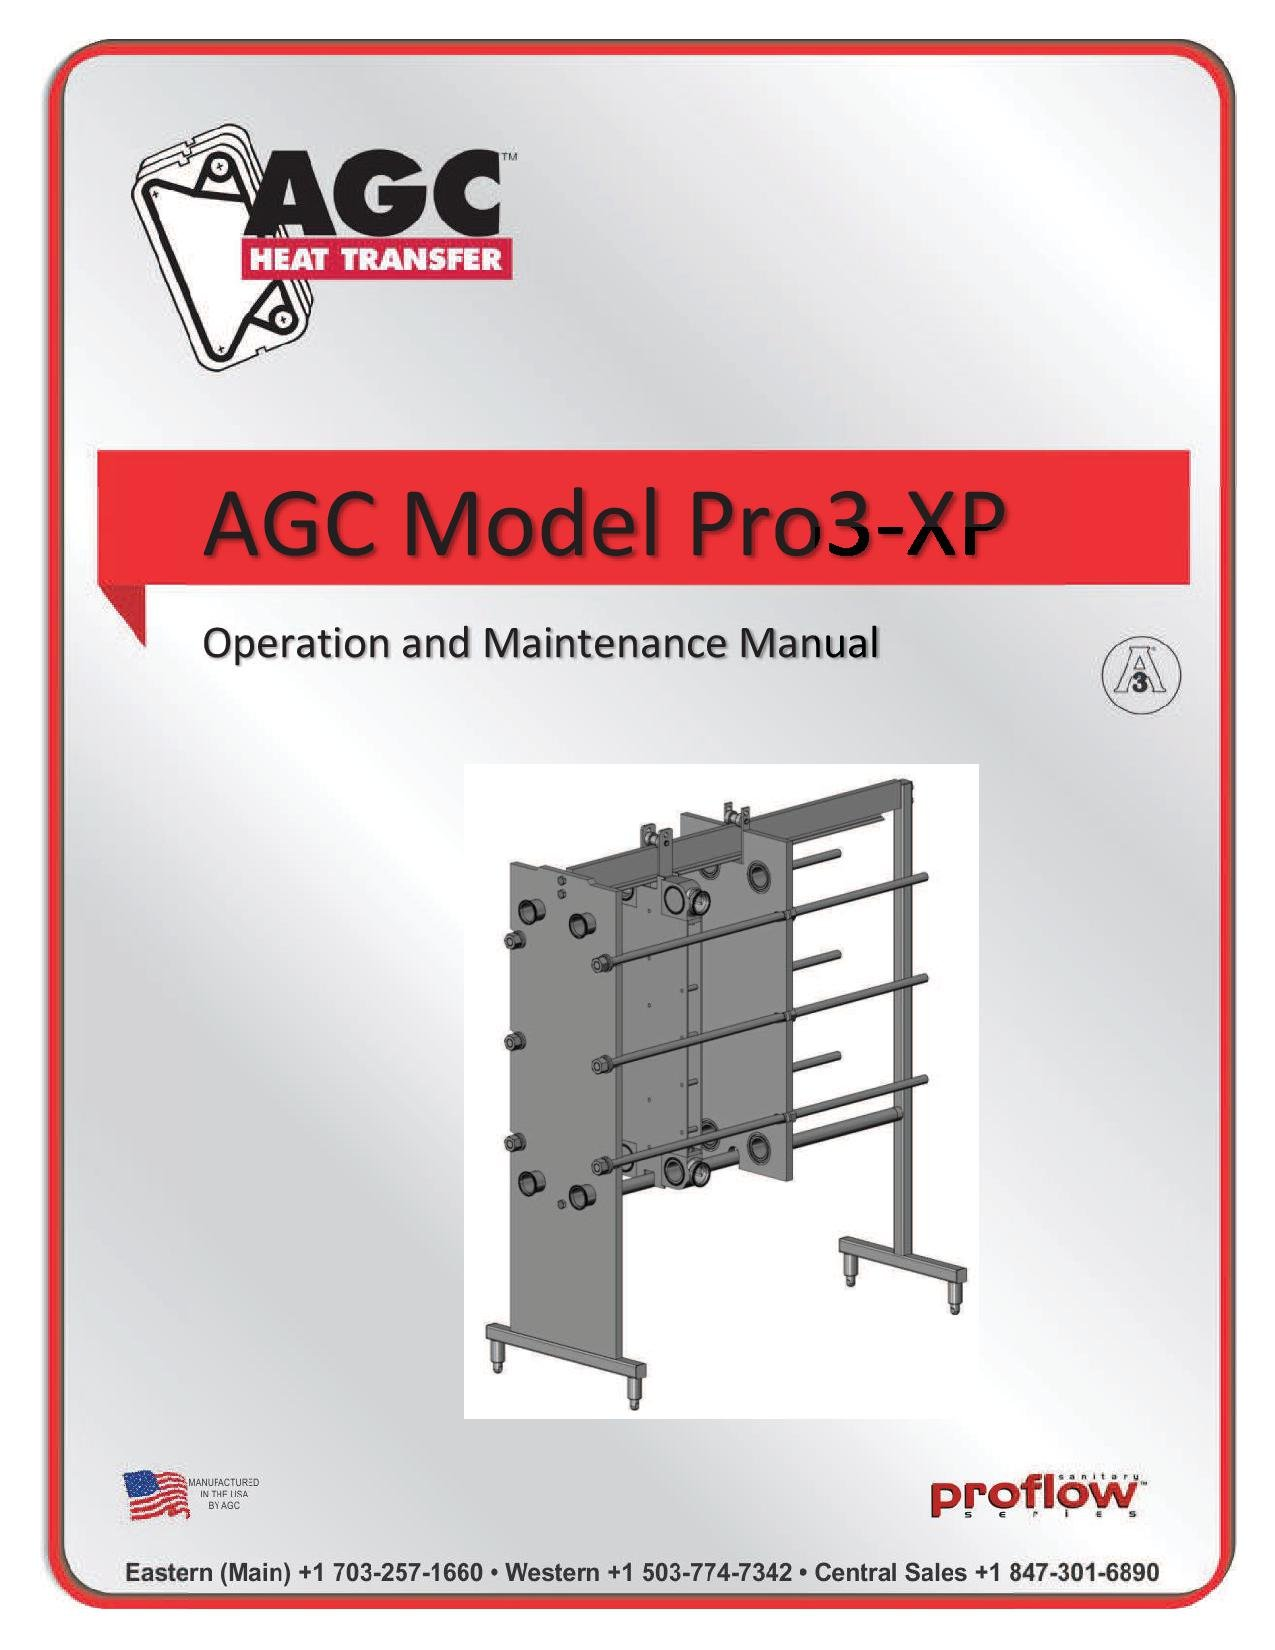 AGC Operating Manual Pro3-XP